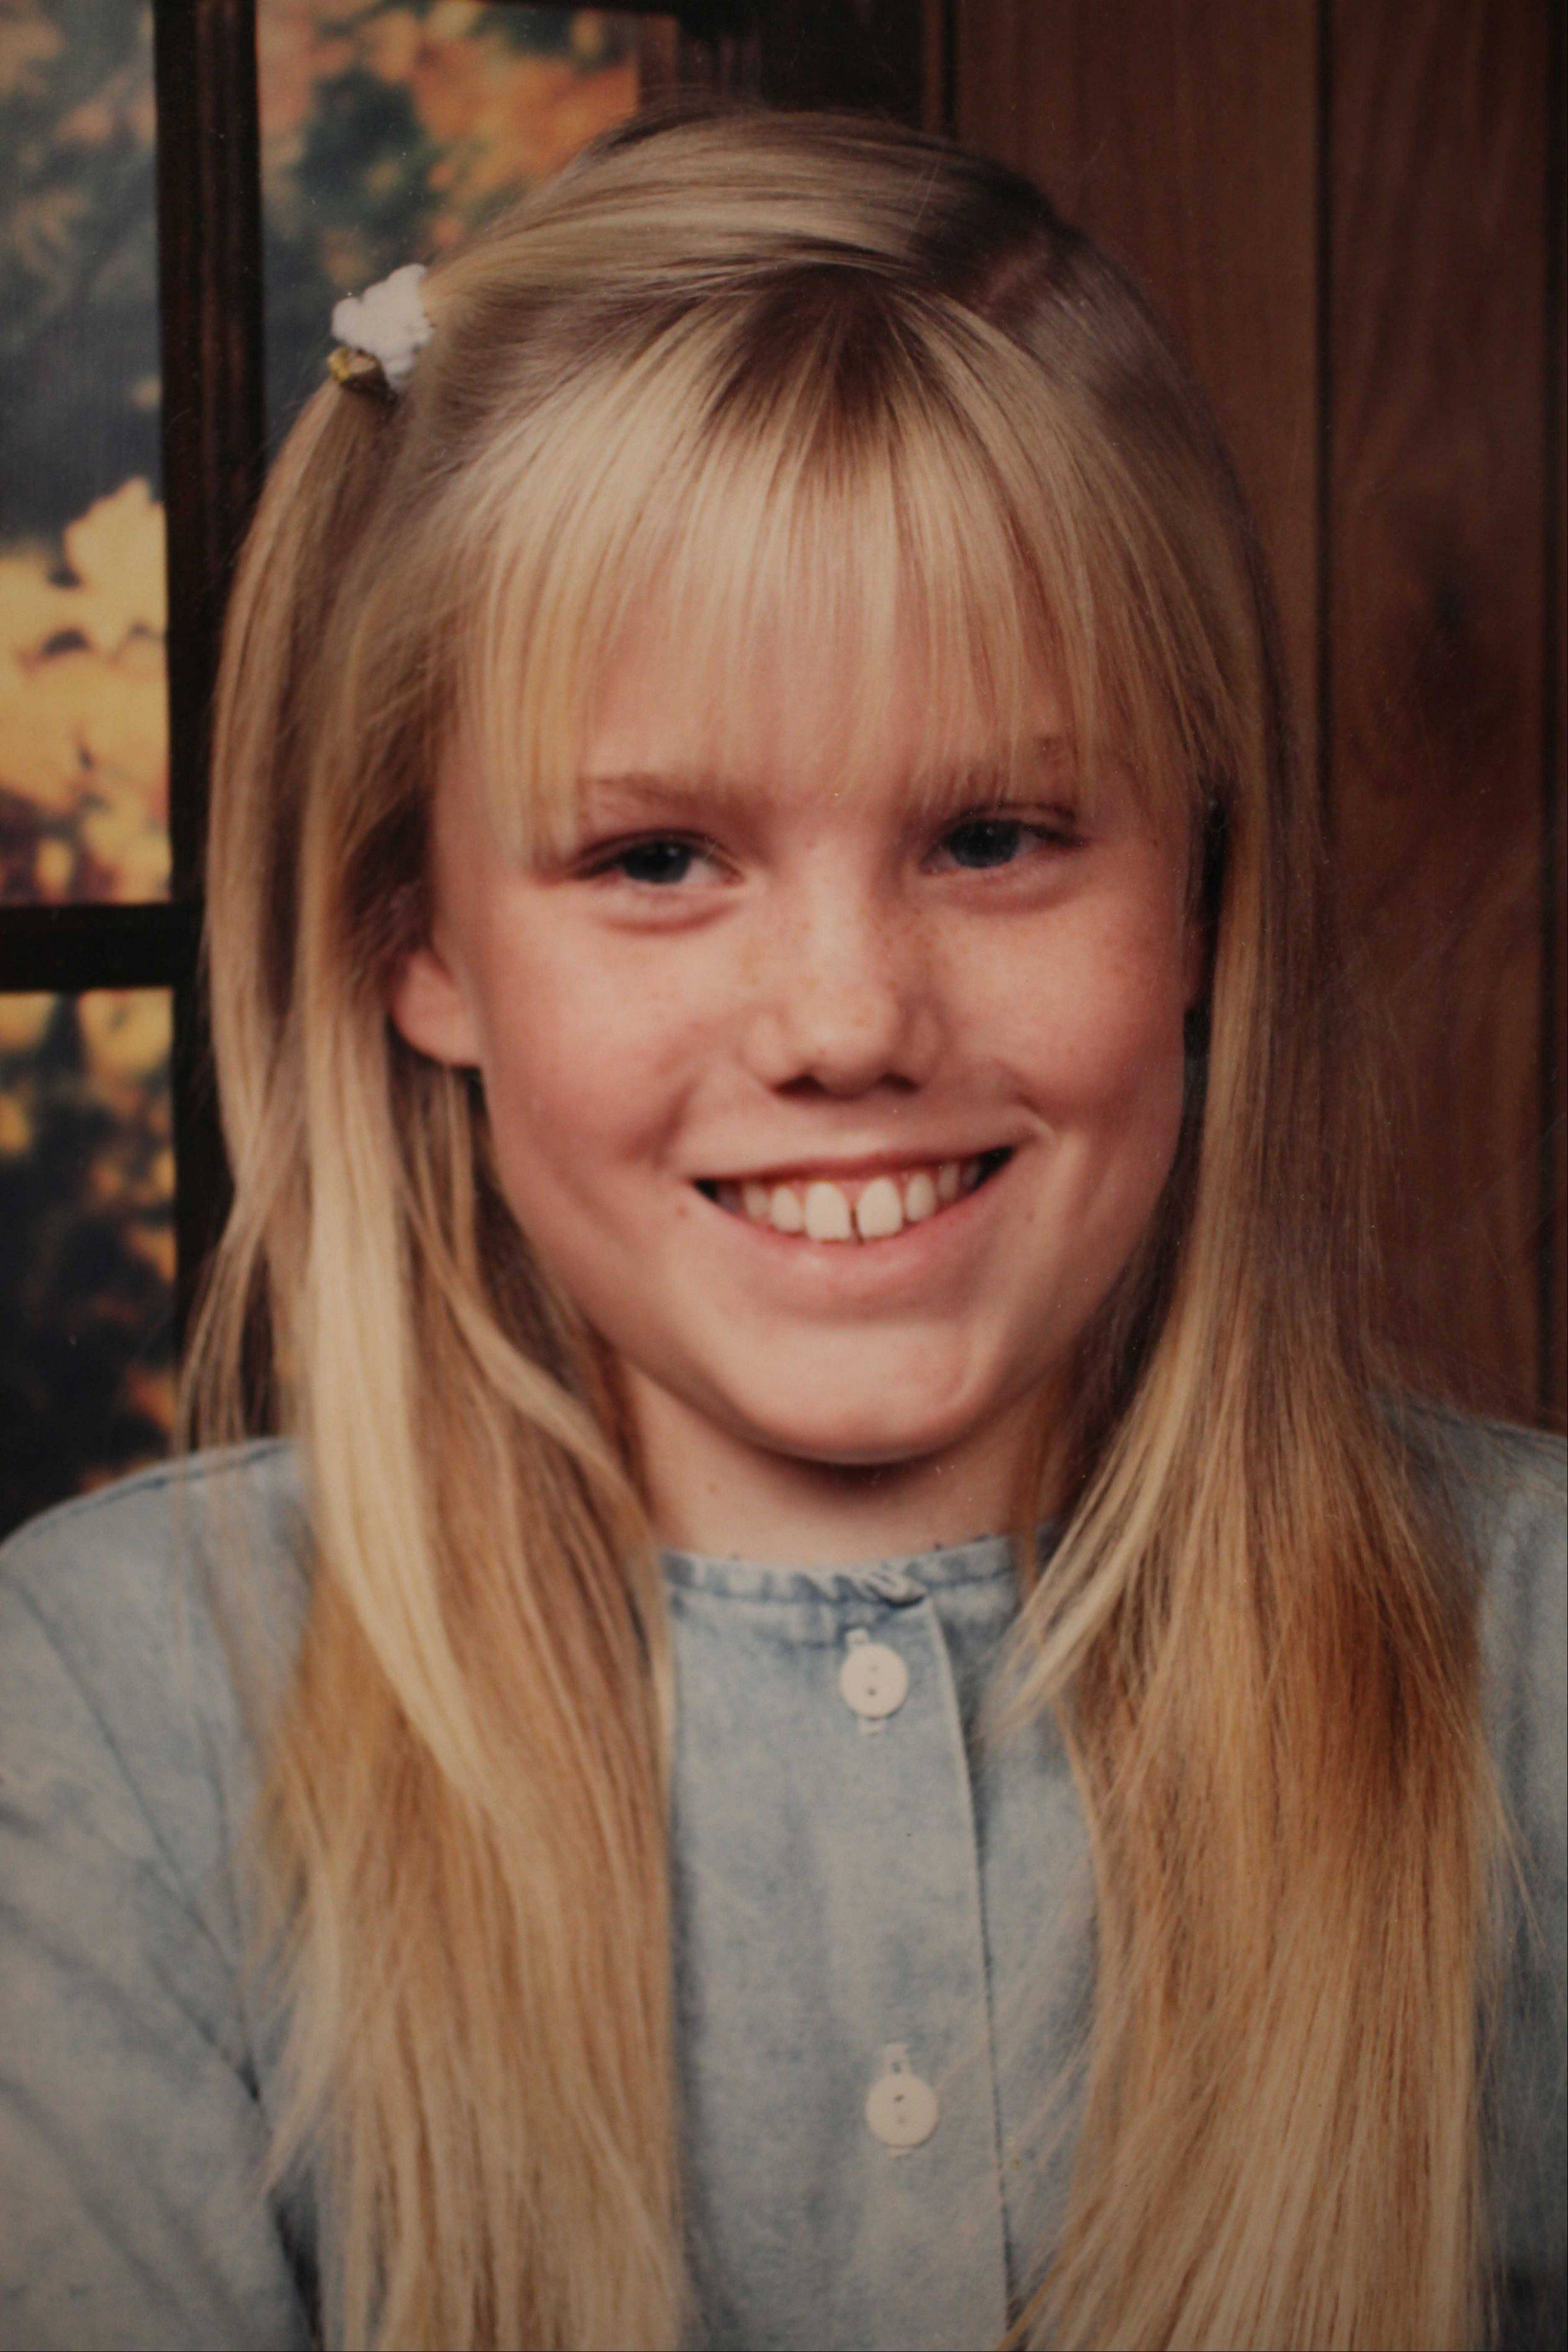 Jaycee Lee Dugard was abducted in June 1991 on her way to school in South Lake Tahoe. Then 11, she was held for 18 years by Phillip and Nancy Garrido. She was raped repeatedly by Garrido and gave birth to two daughters.